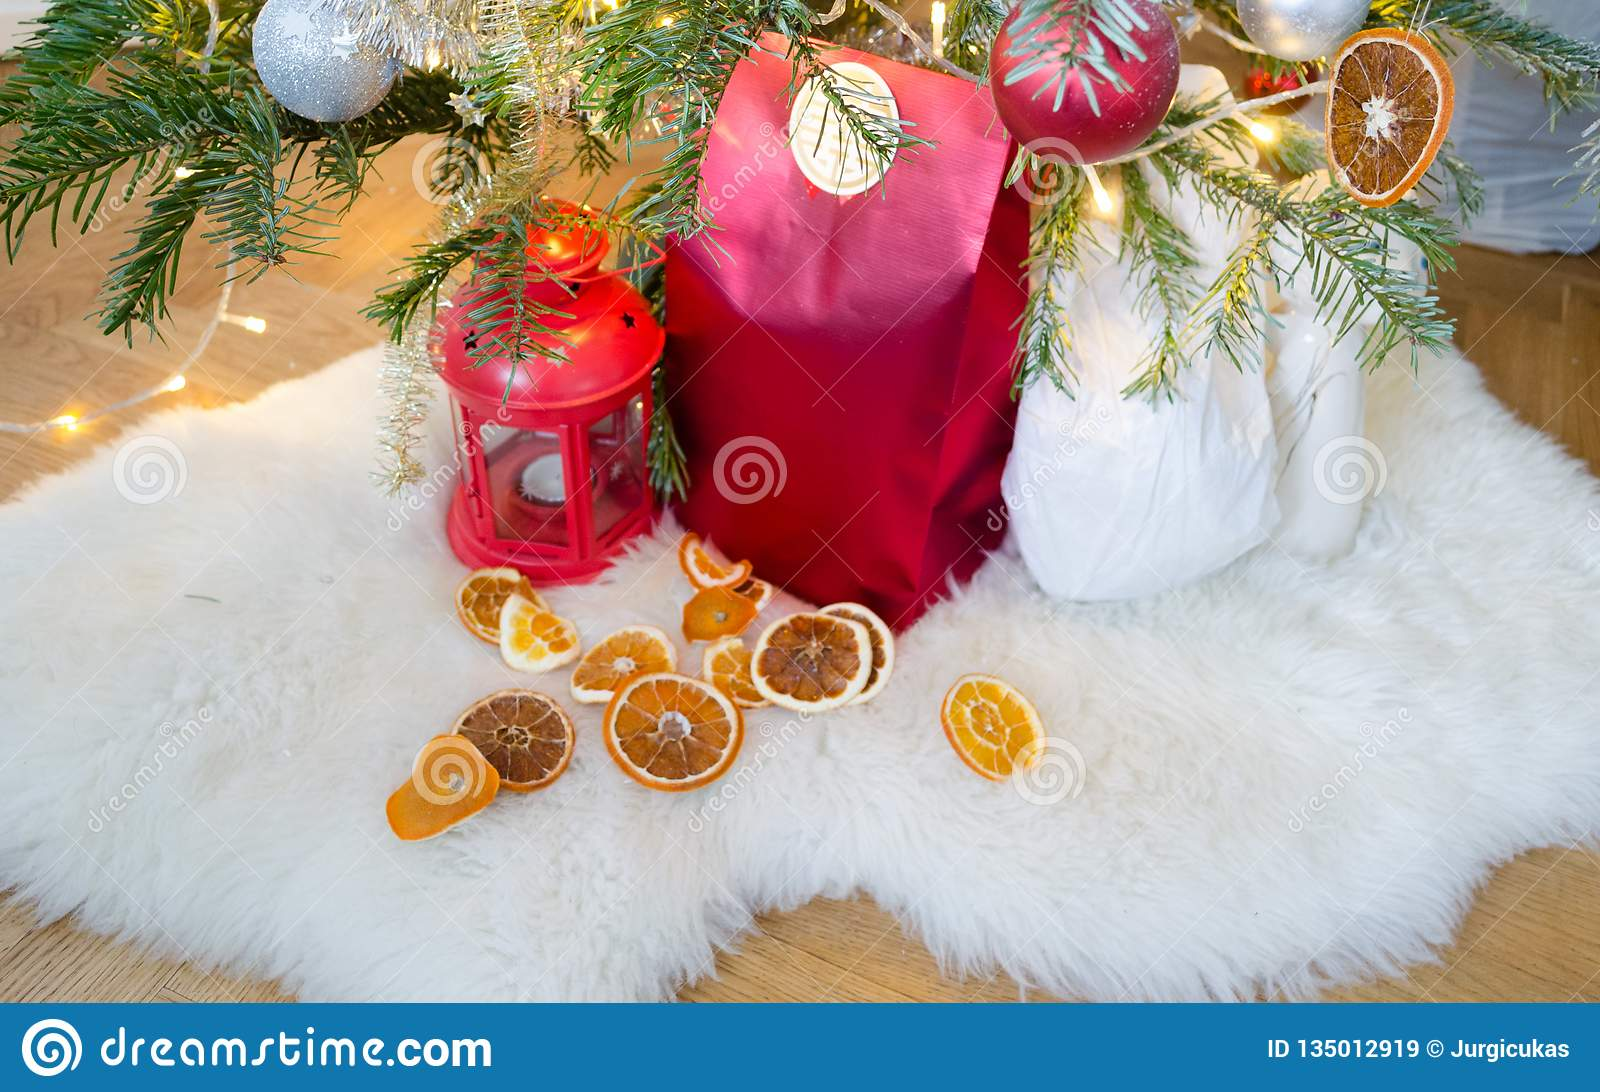 Christmas Decorations Under The Christmas Tree Stock Image ...